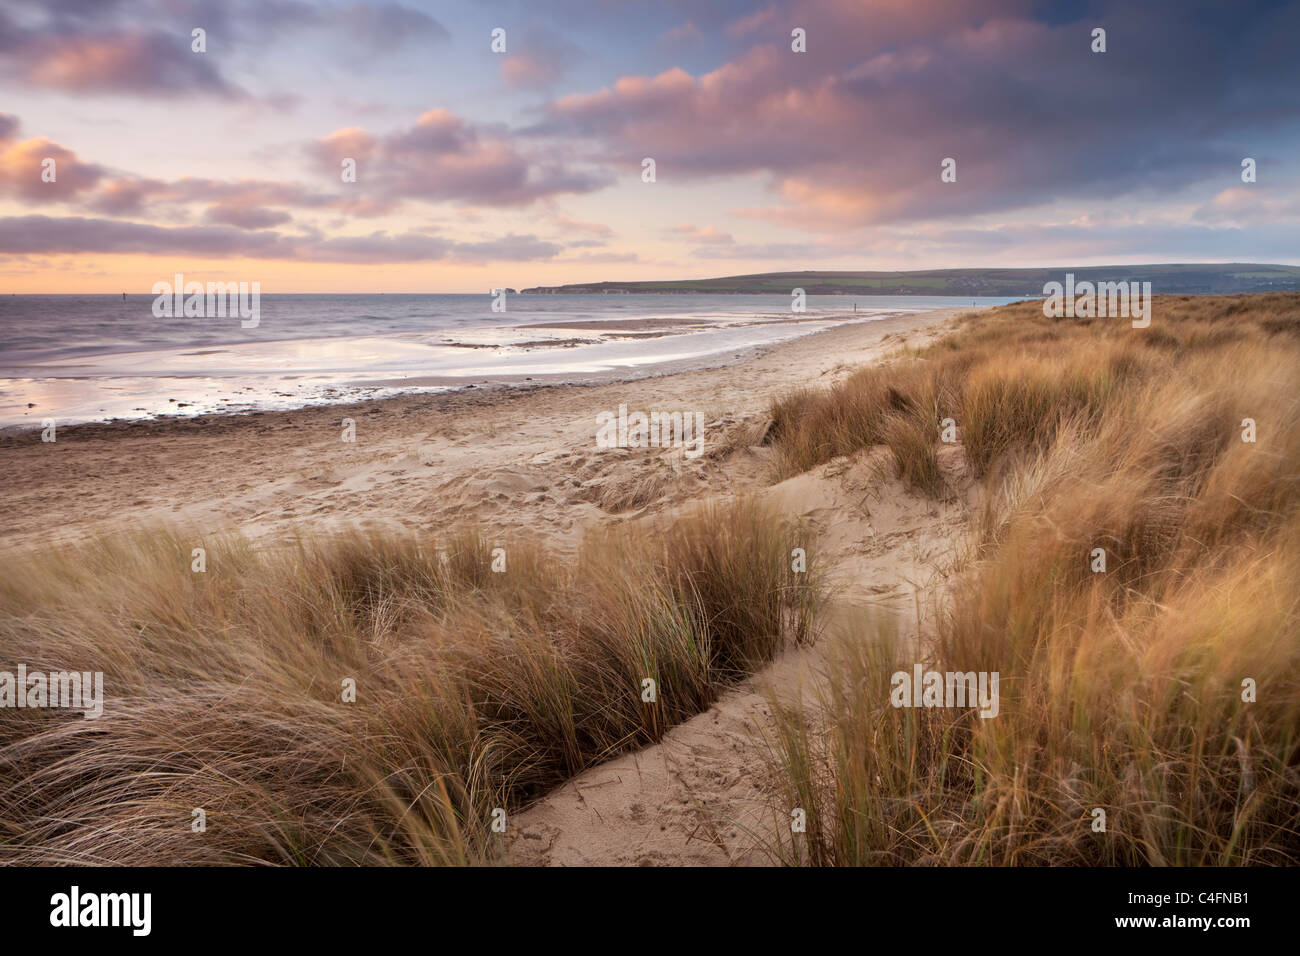 Windswept sand dunes on the beach at Studland Bay, Dorset, England. Winter (February) 2011. - Stock Image